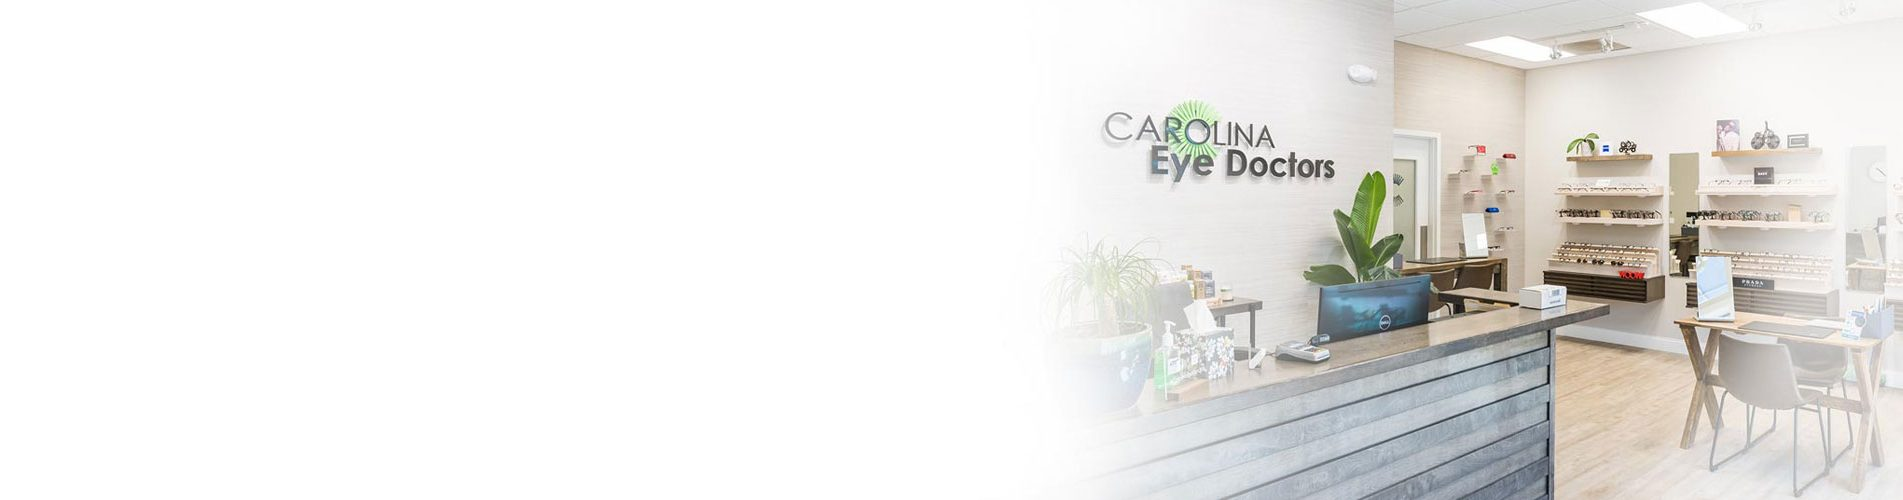 Carolina Eye Doctors office